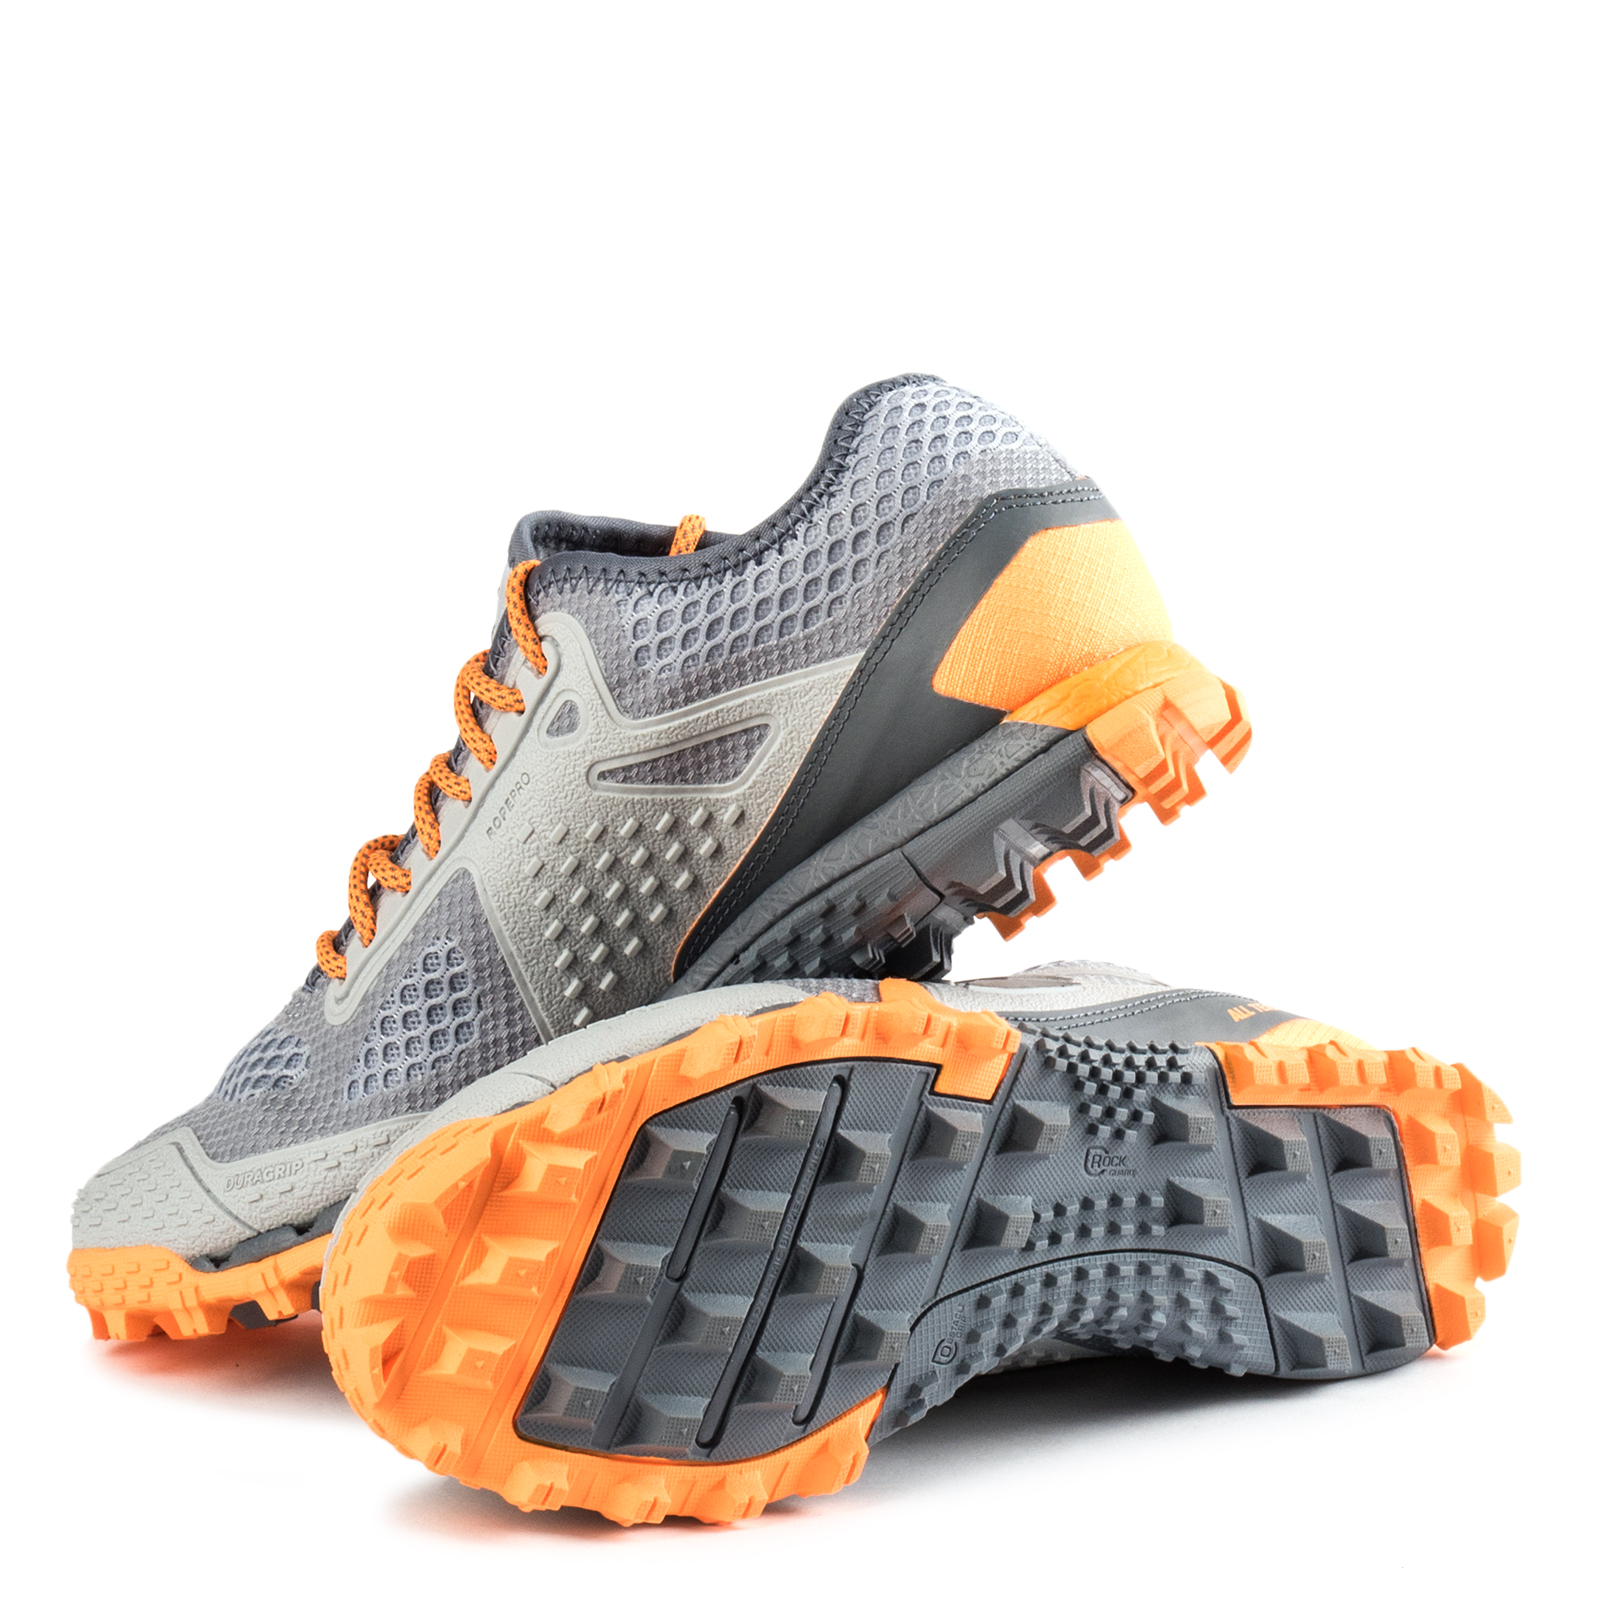 Available from 10.11 REEBOK running shoes BD4635 socone 2016 new brand running shoes outdoor light sports shoes men women athletic training run sneakers comfortable breathable